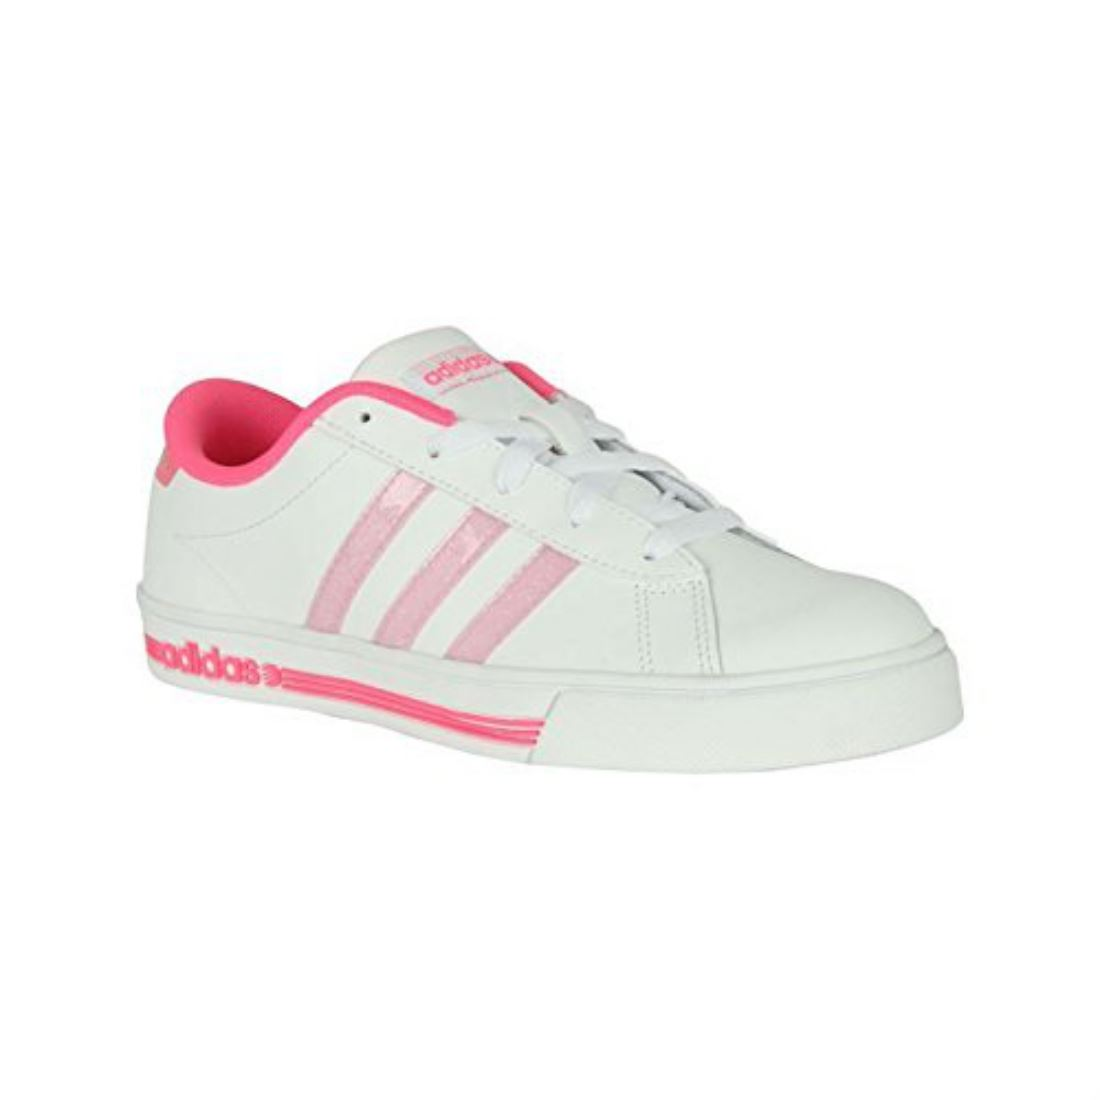 Adidas Shoes Images For Girls